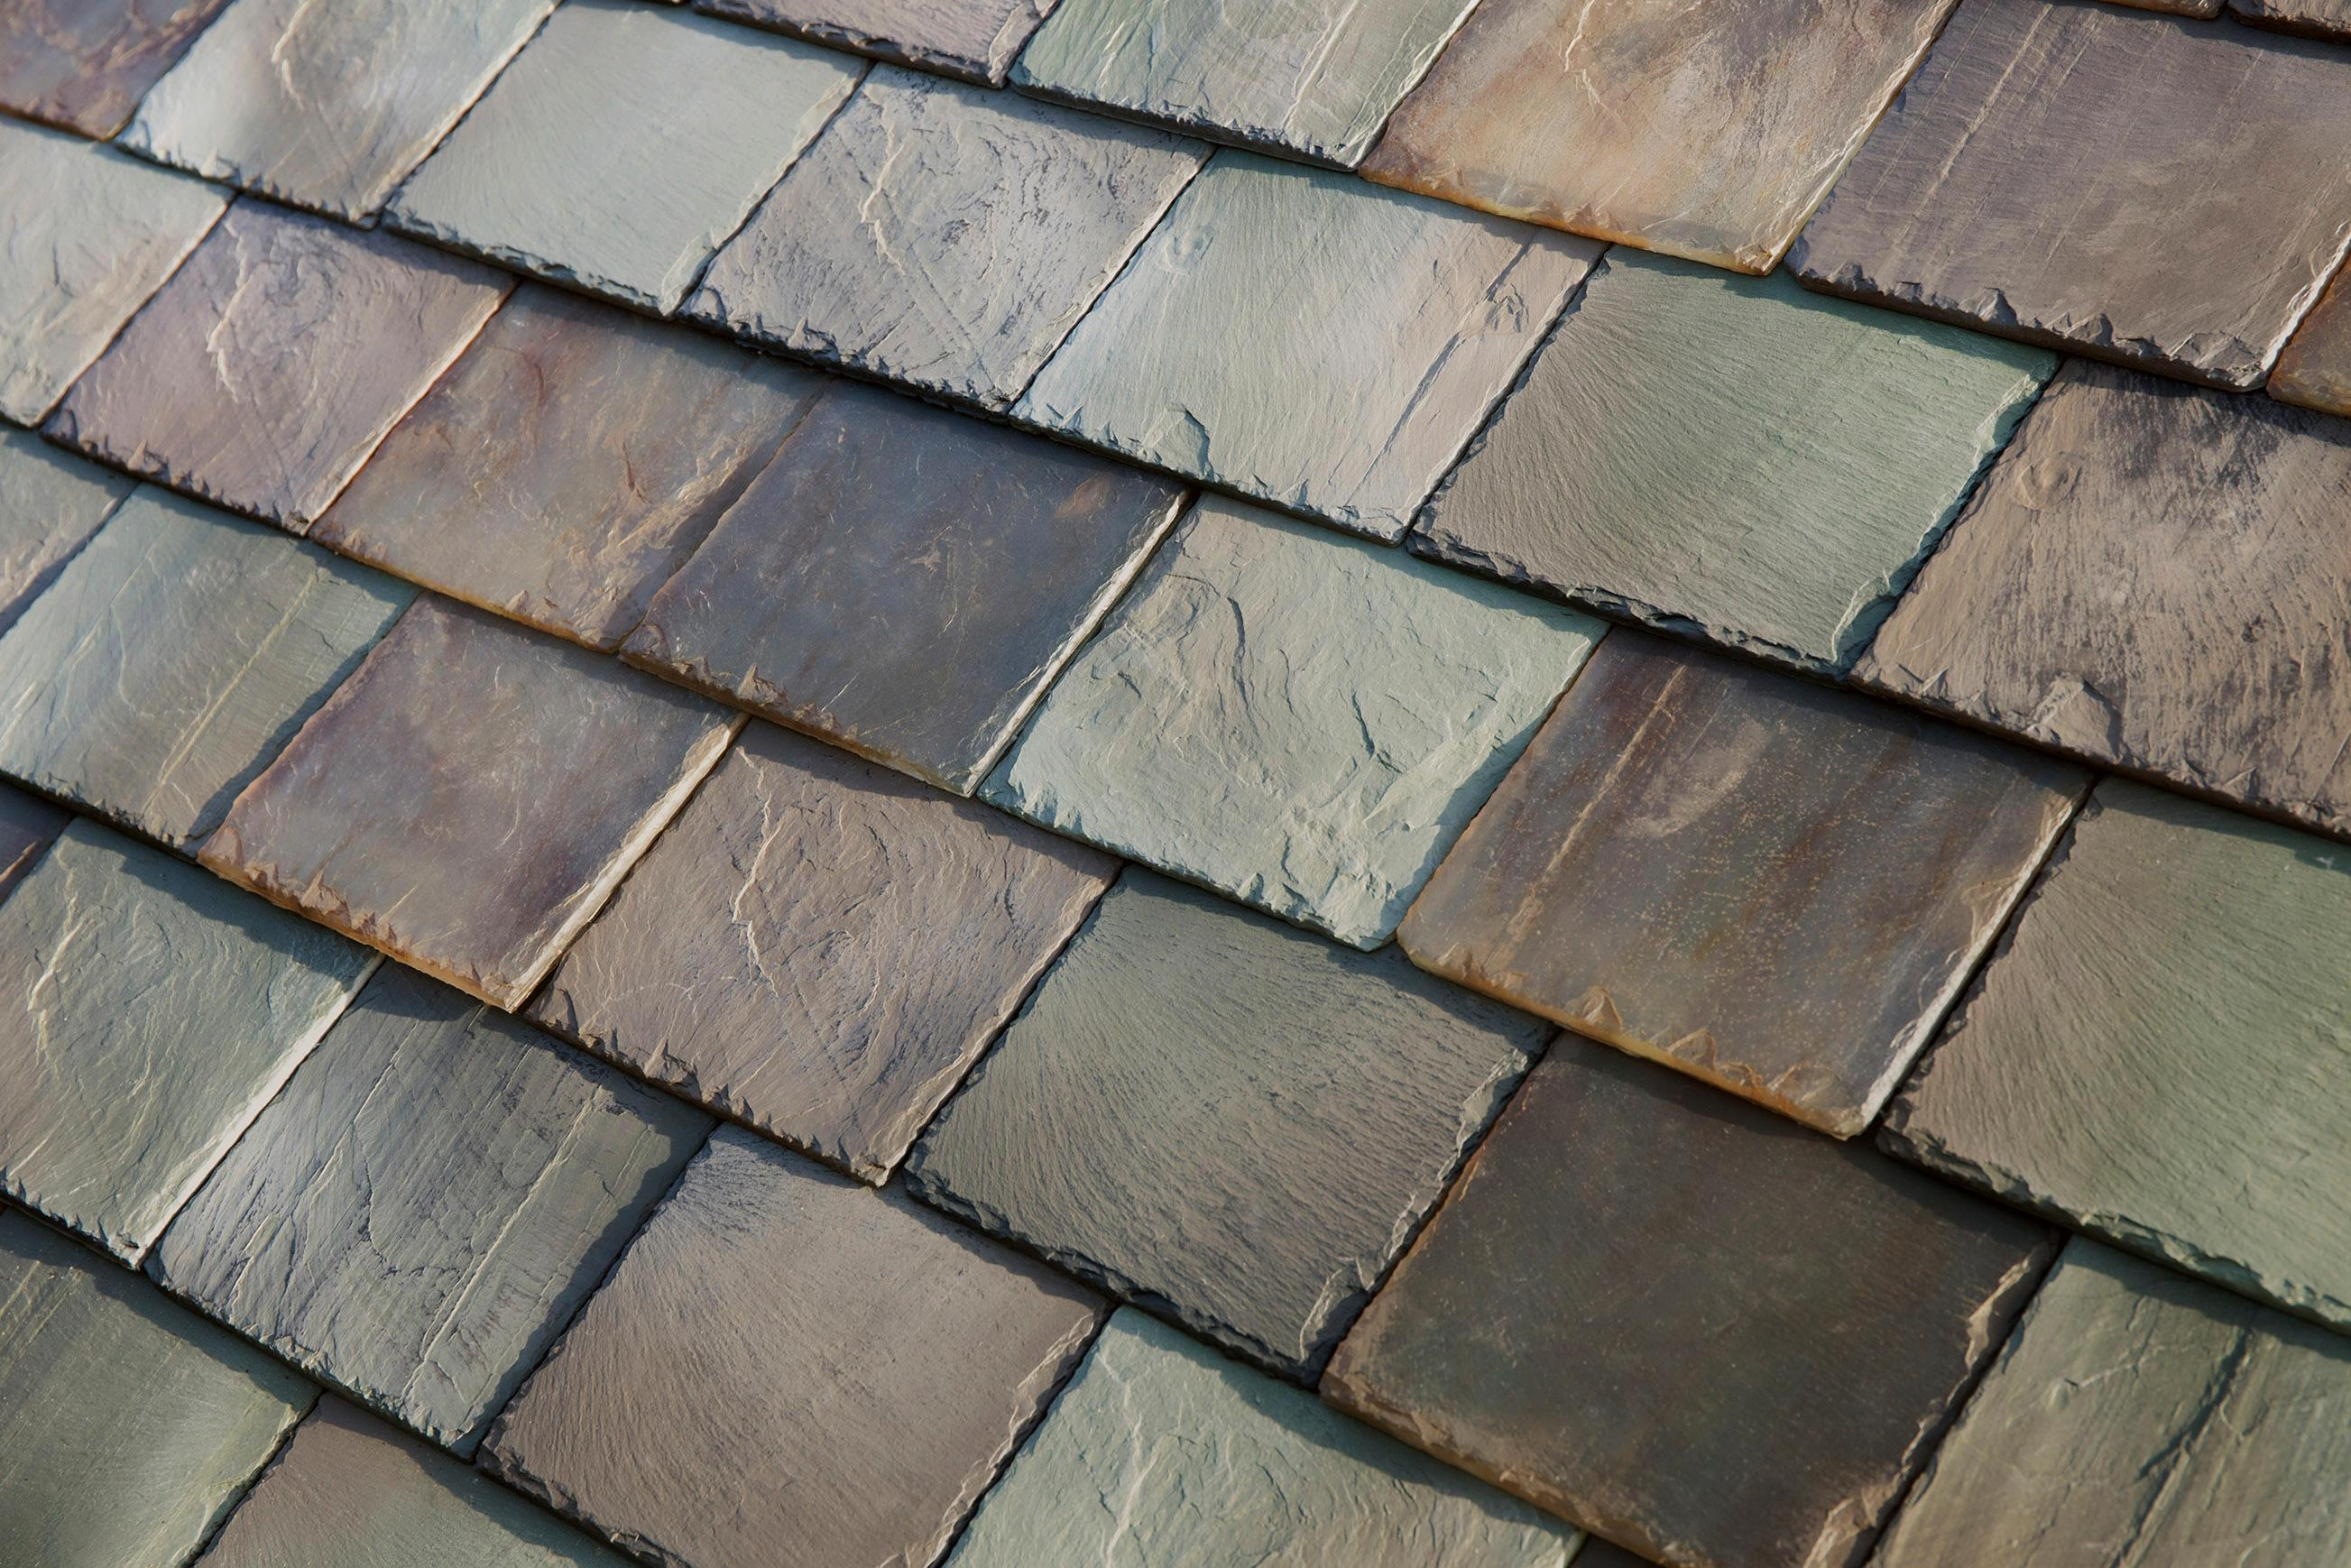 This photo provided by Tesla shows a detail of Tesla's new slate solar roof tiles. As of Wednesday, May 10, 2017, customers worldwide could order a solar roof on Tesla's website. The glass tiles are designed to look like a traditional roof, with options that replicate slate or terracotta tiles. The solar tiles contain photovoltaic cells that are invisible from the street. Installations will begin in June in the U.S., starting with California. Installations outside the U.S. will begin in 2018, the company said. (Courtesy of Tesla via AP)